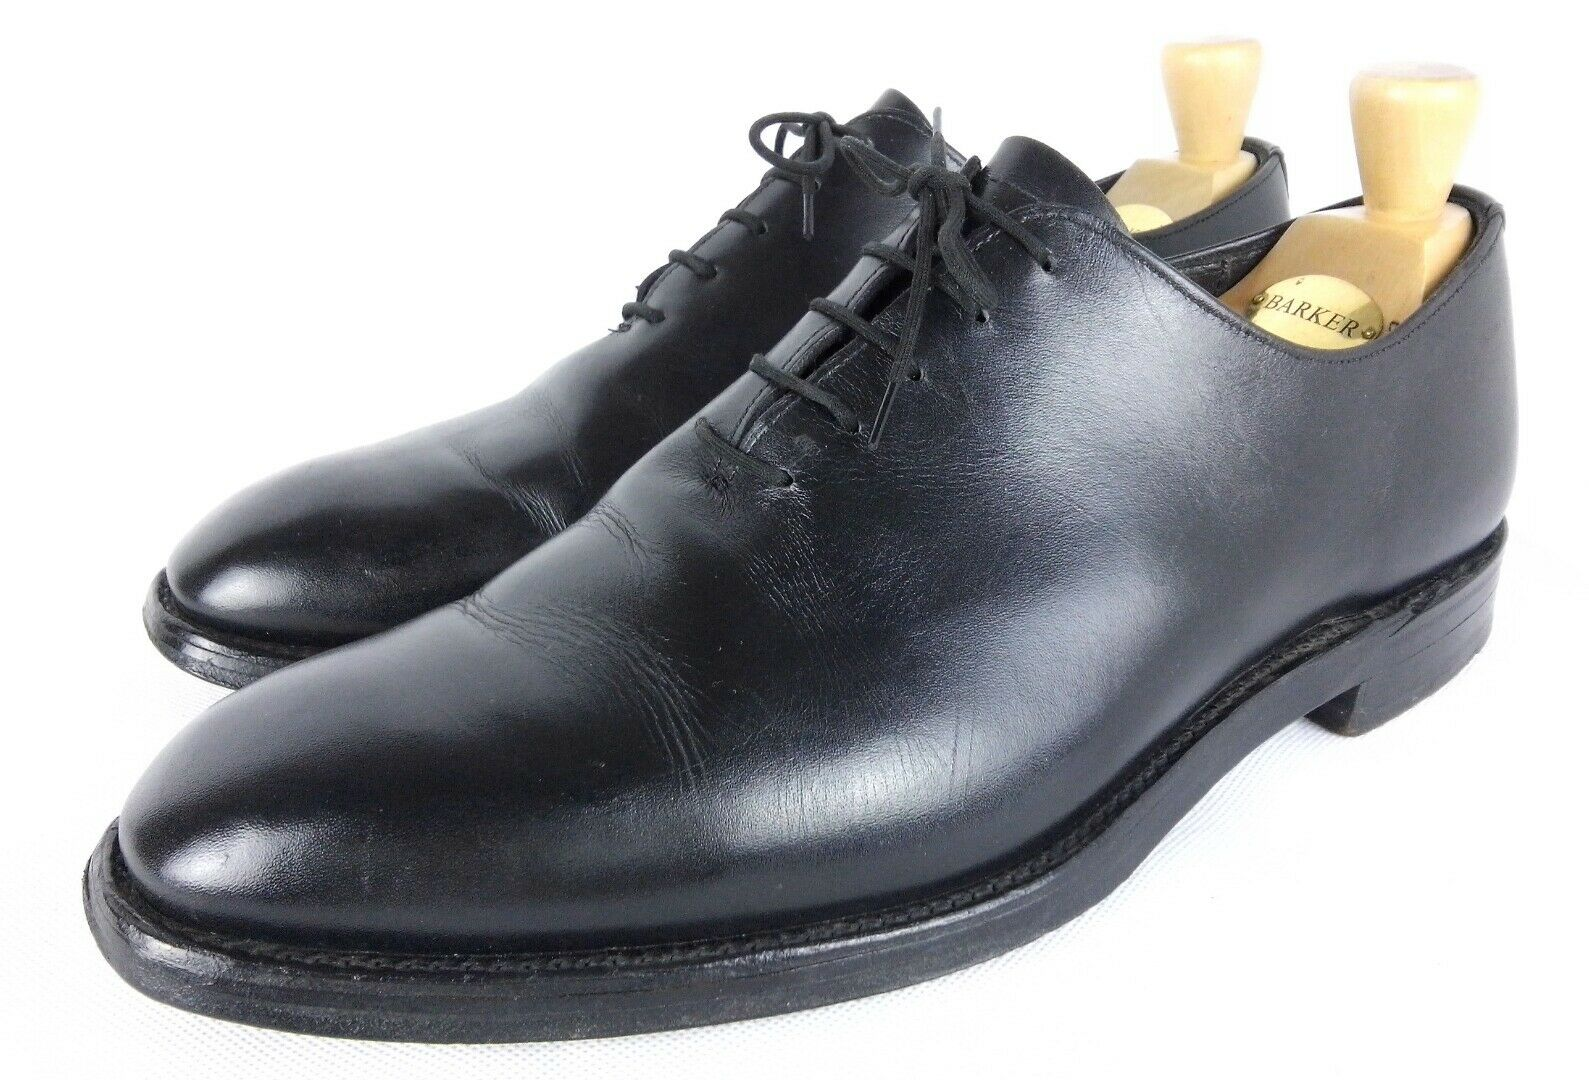 Tim little Grenson Black Wholecut Oxford shoes UK 9 F Made in England